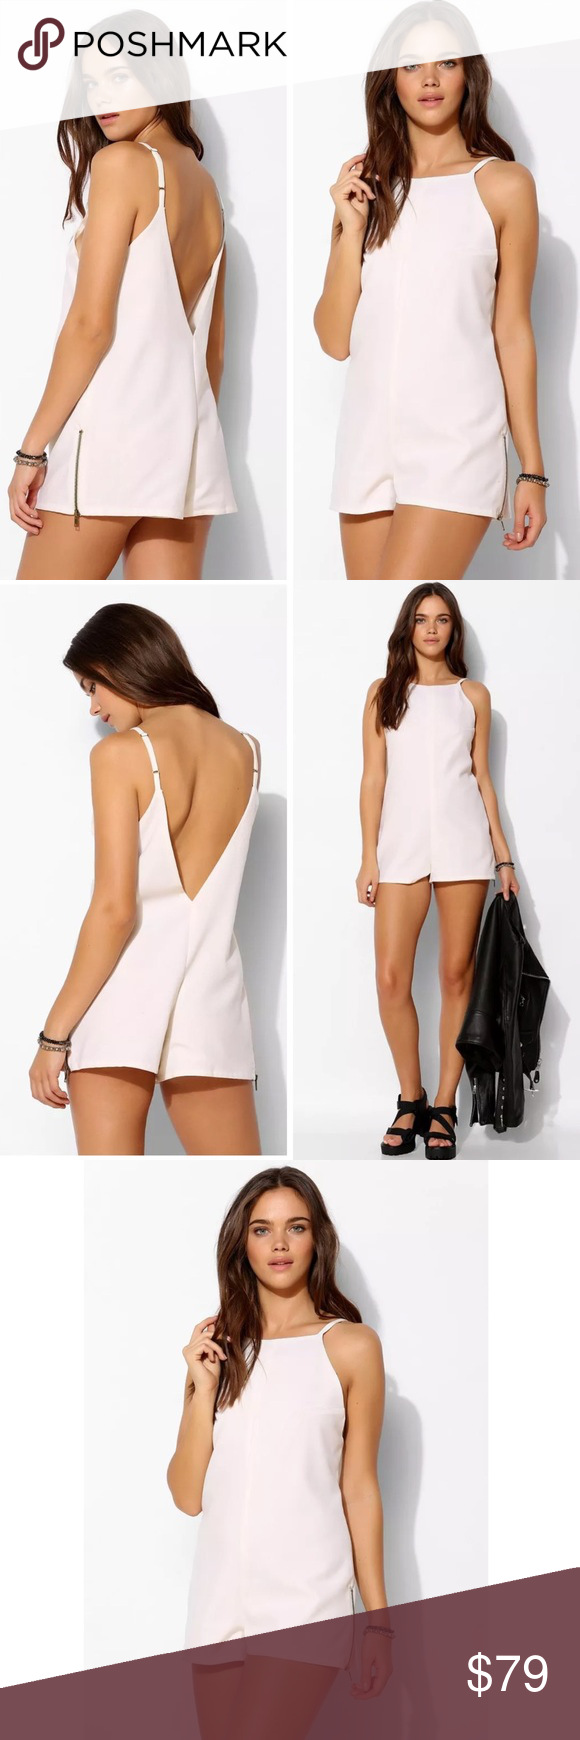 """STONE COLD FOX DEEP V BACK ROMPER size 1 xs small Drapey, soft woven romper from LA label Stone Cold Fox in soft woven poplin with a daring, deep v-back and zip accents along the legs. Cut in a relaxed, comfy fit with a v-neck and adjustable straps. Fully lined. The vision of two childhood friends, Stone Cold Fox believes in quality over quantity and romantically-inspired pieces. $158 retail new no price tag perfect condition   Size 1 (xs/small): armpit to armpit 17.5"""", inseam 2"""", length…"""